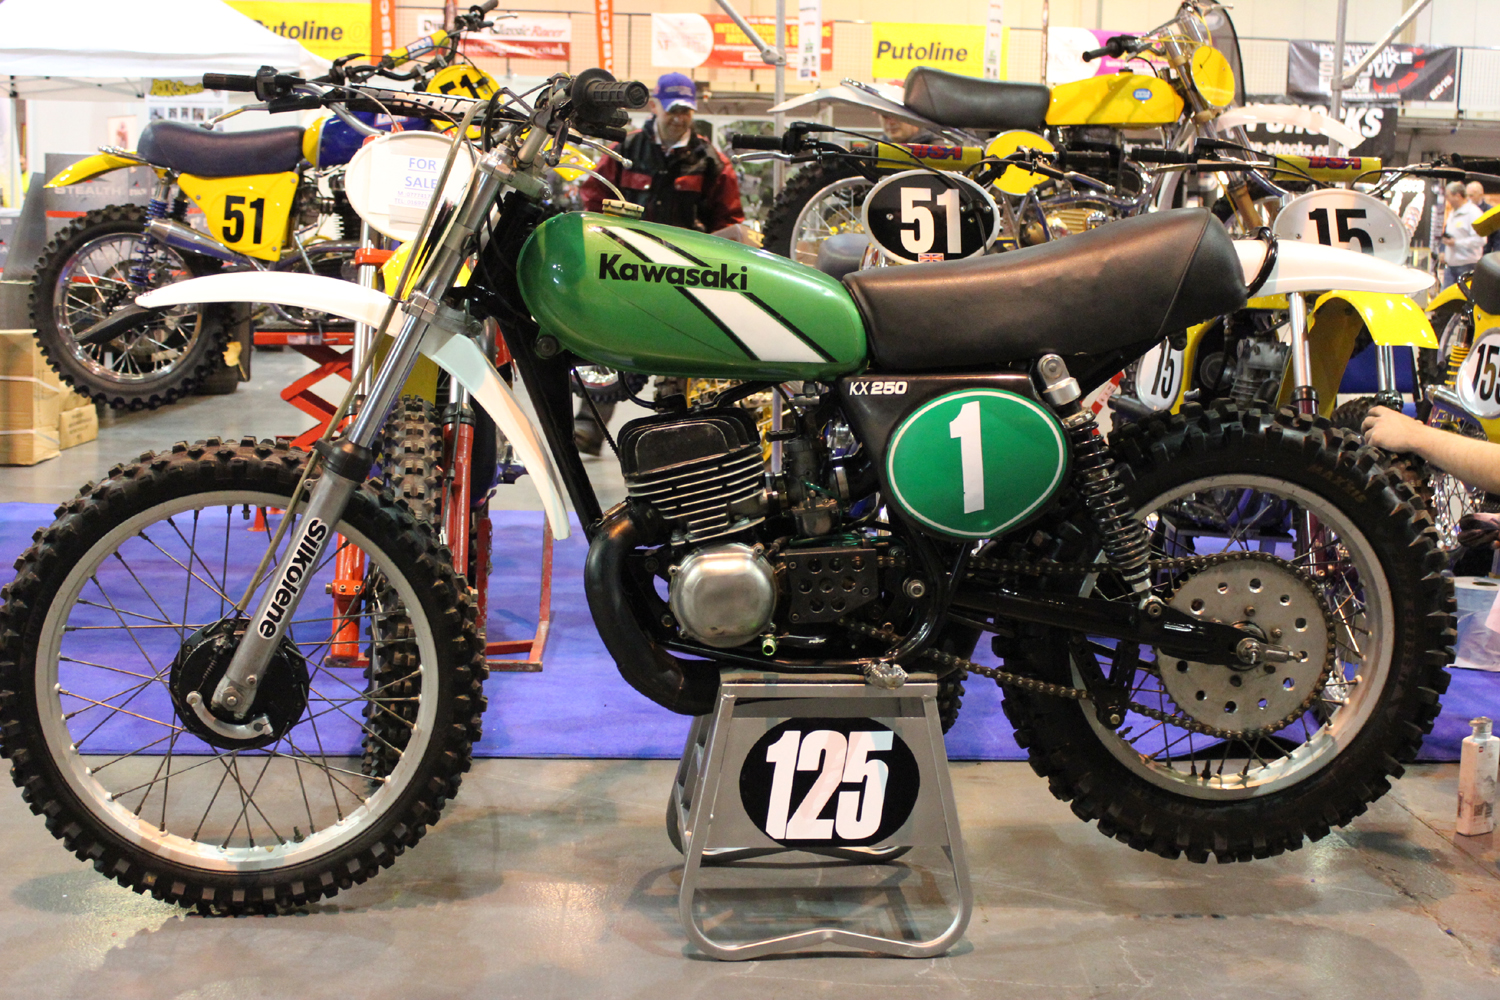 classicdirtbikerider.com-photo by Mr J-2015 Telford classic dirt bike show-EARLY 1970s KAWASAKI KX250 MOTOCROSS BIKE